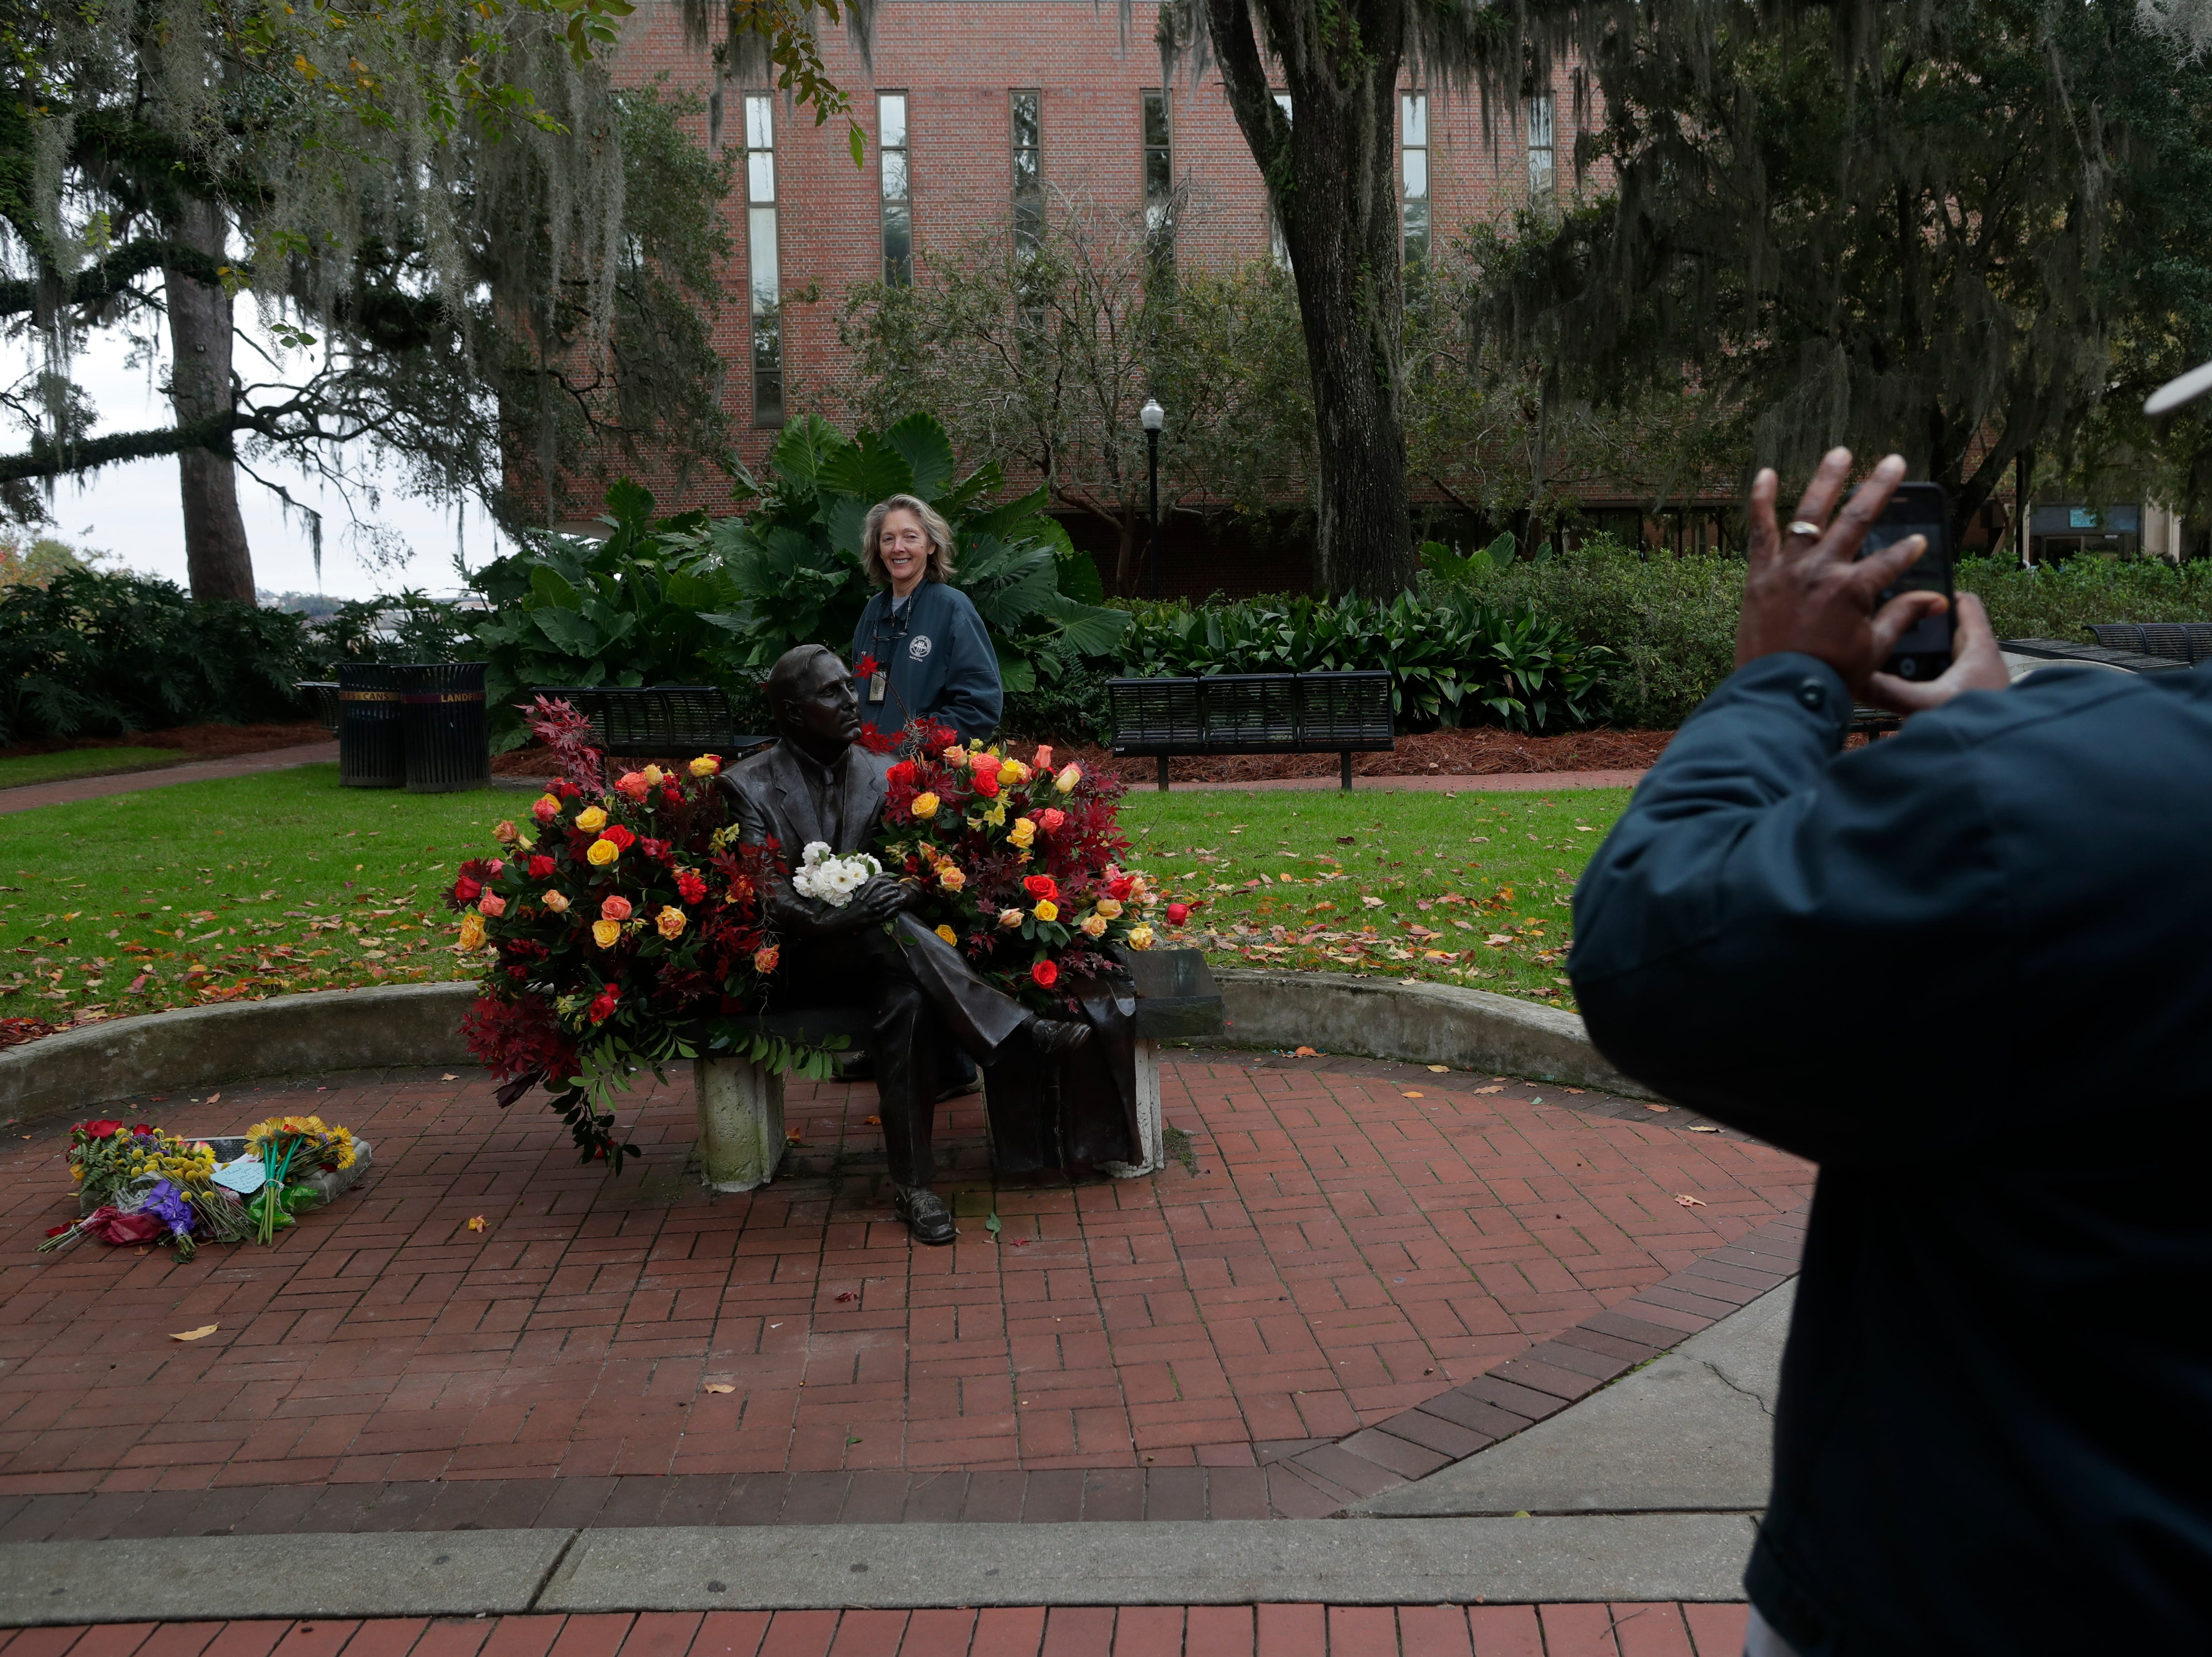 Florida State University Grounds Department employeee Betsy Smith gets her photo taken by her colleague Kenneth Prather before a funeral service for Florida State University President Emeritus T.K. Wetherell held at Ruby Diamond Concert Hall Friday, Dec. 21, 2018.